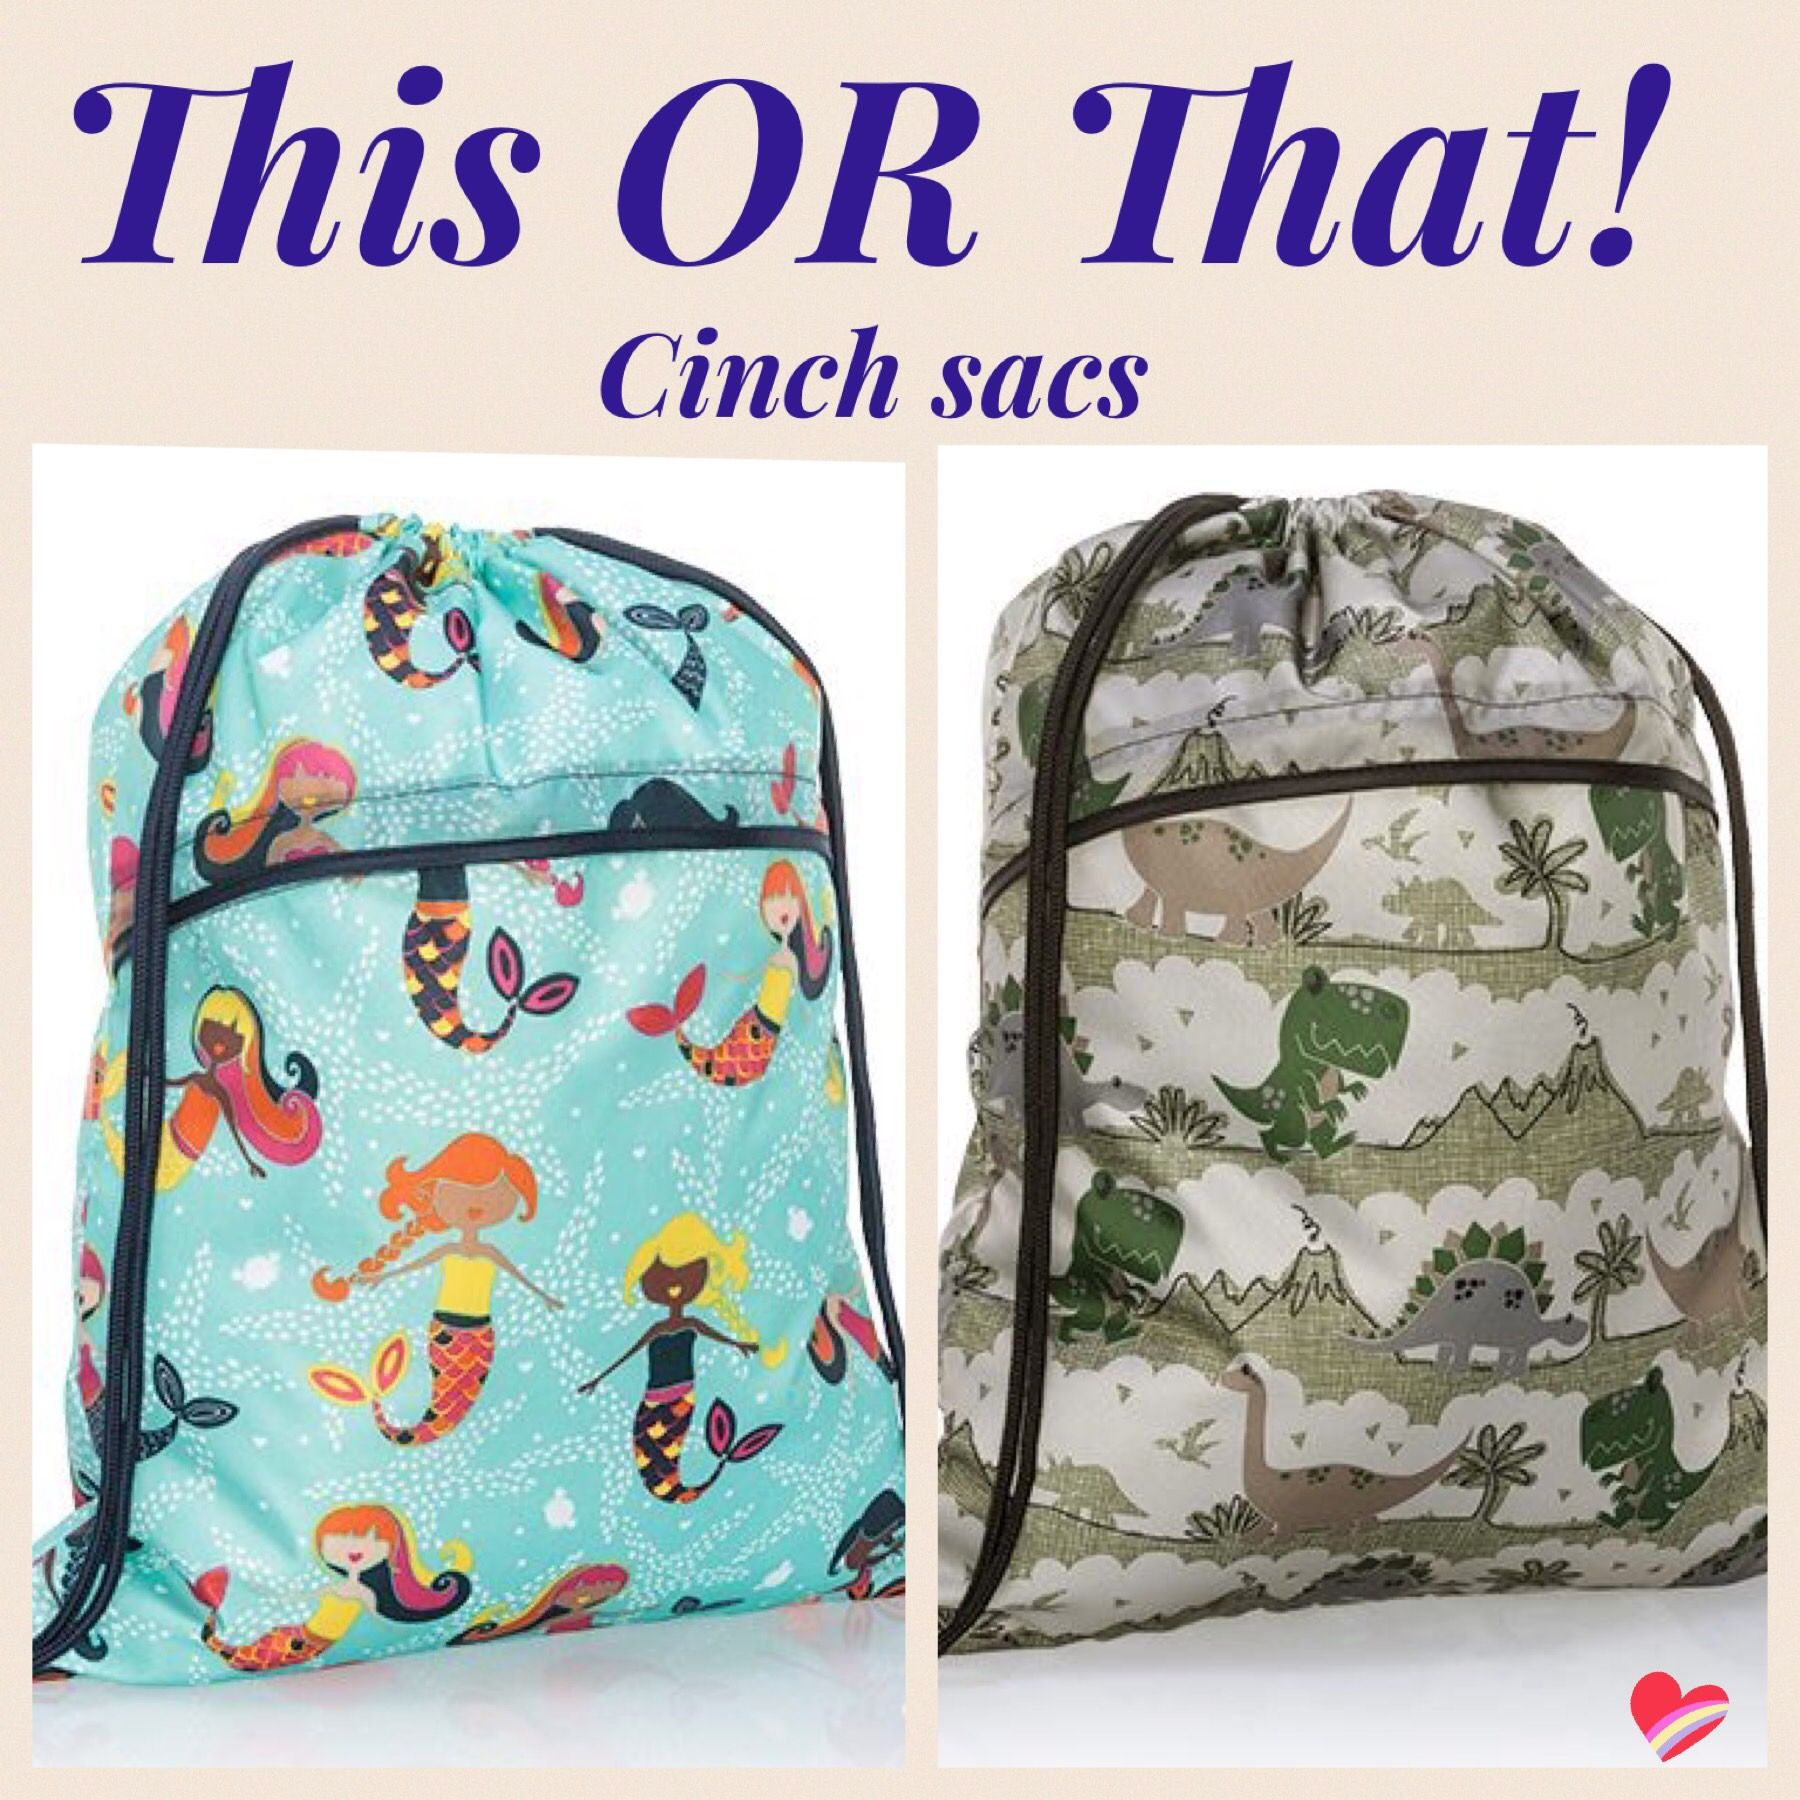 d075ee679956 Dino parade and mermaid cinch sacs from Thirty-One Summer Guide ...